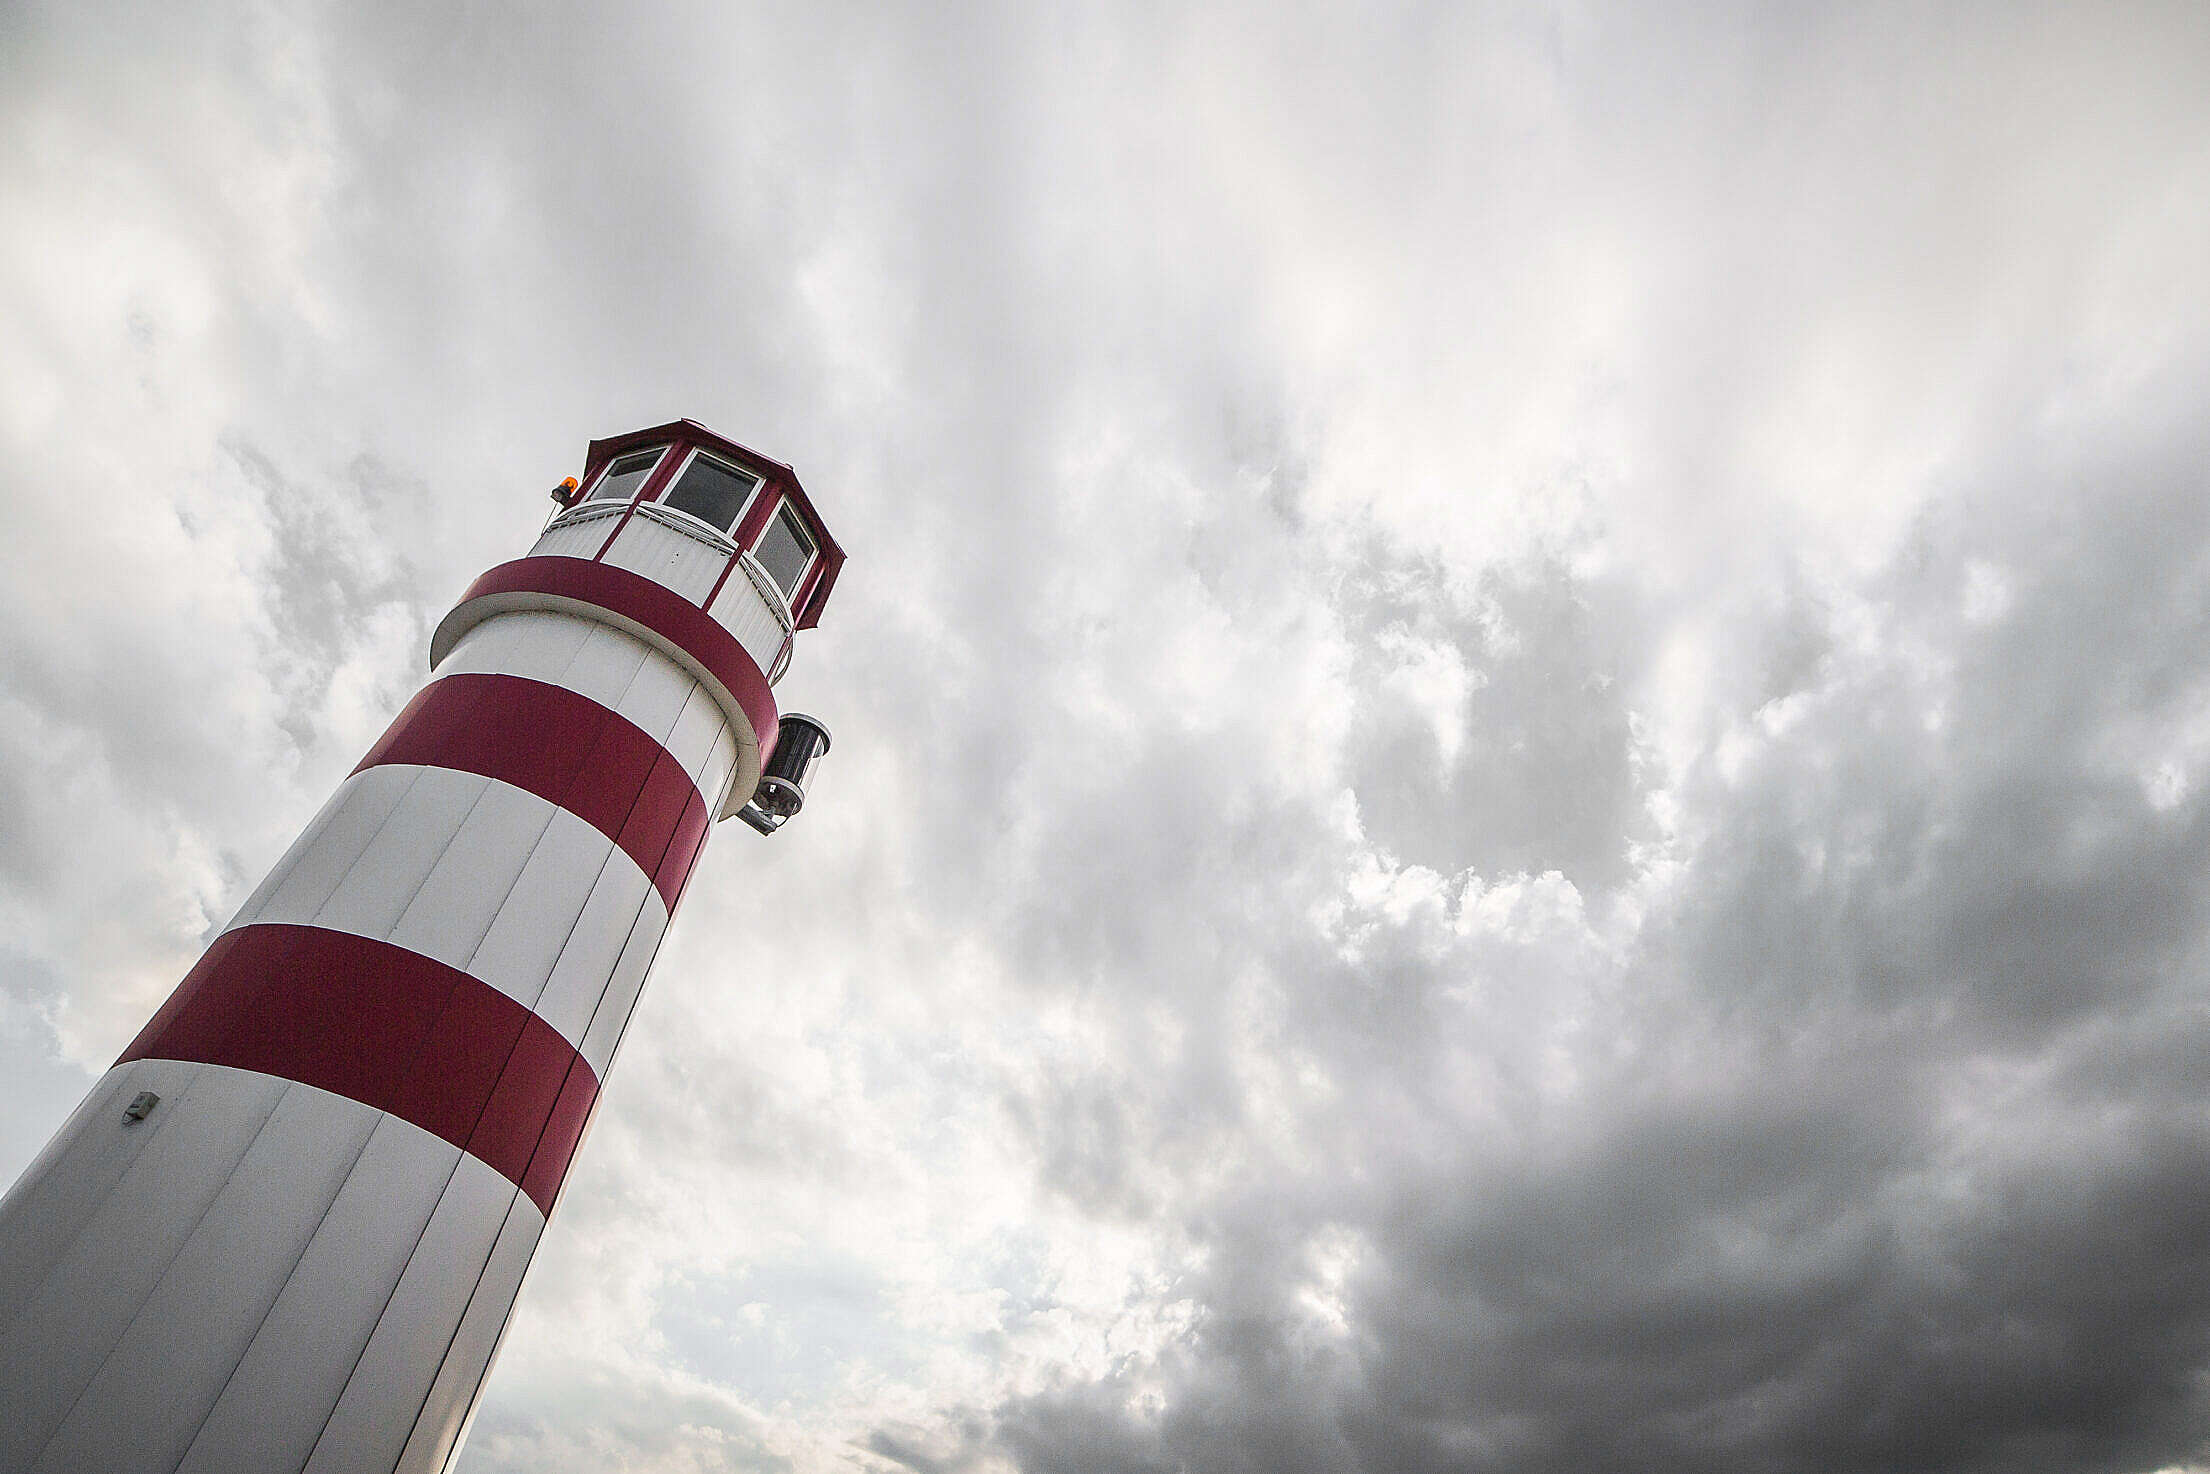 From the Bottom of the Lighthouse Free Stock Photo